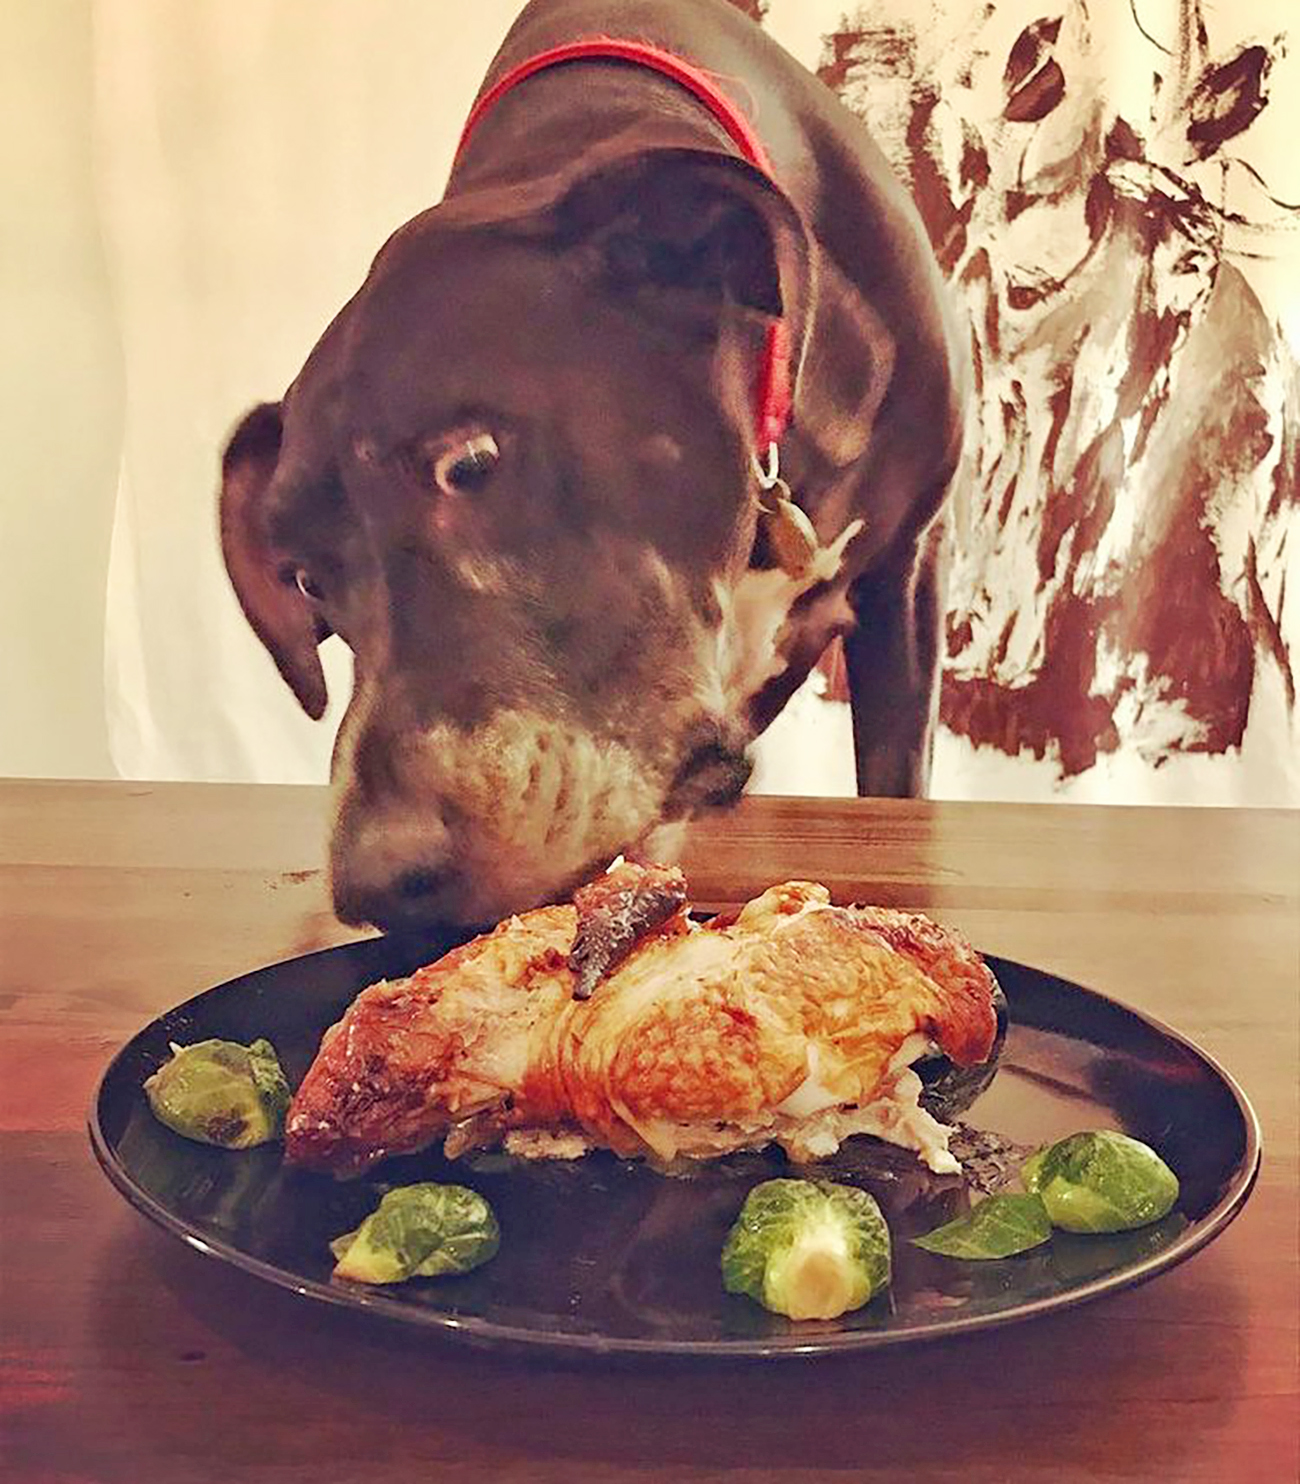 Large dog enjoying a chicken dish on a plate